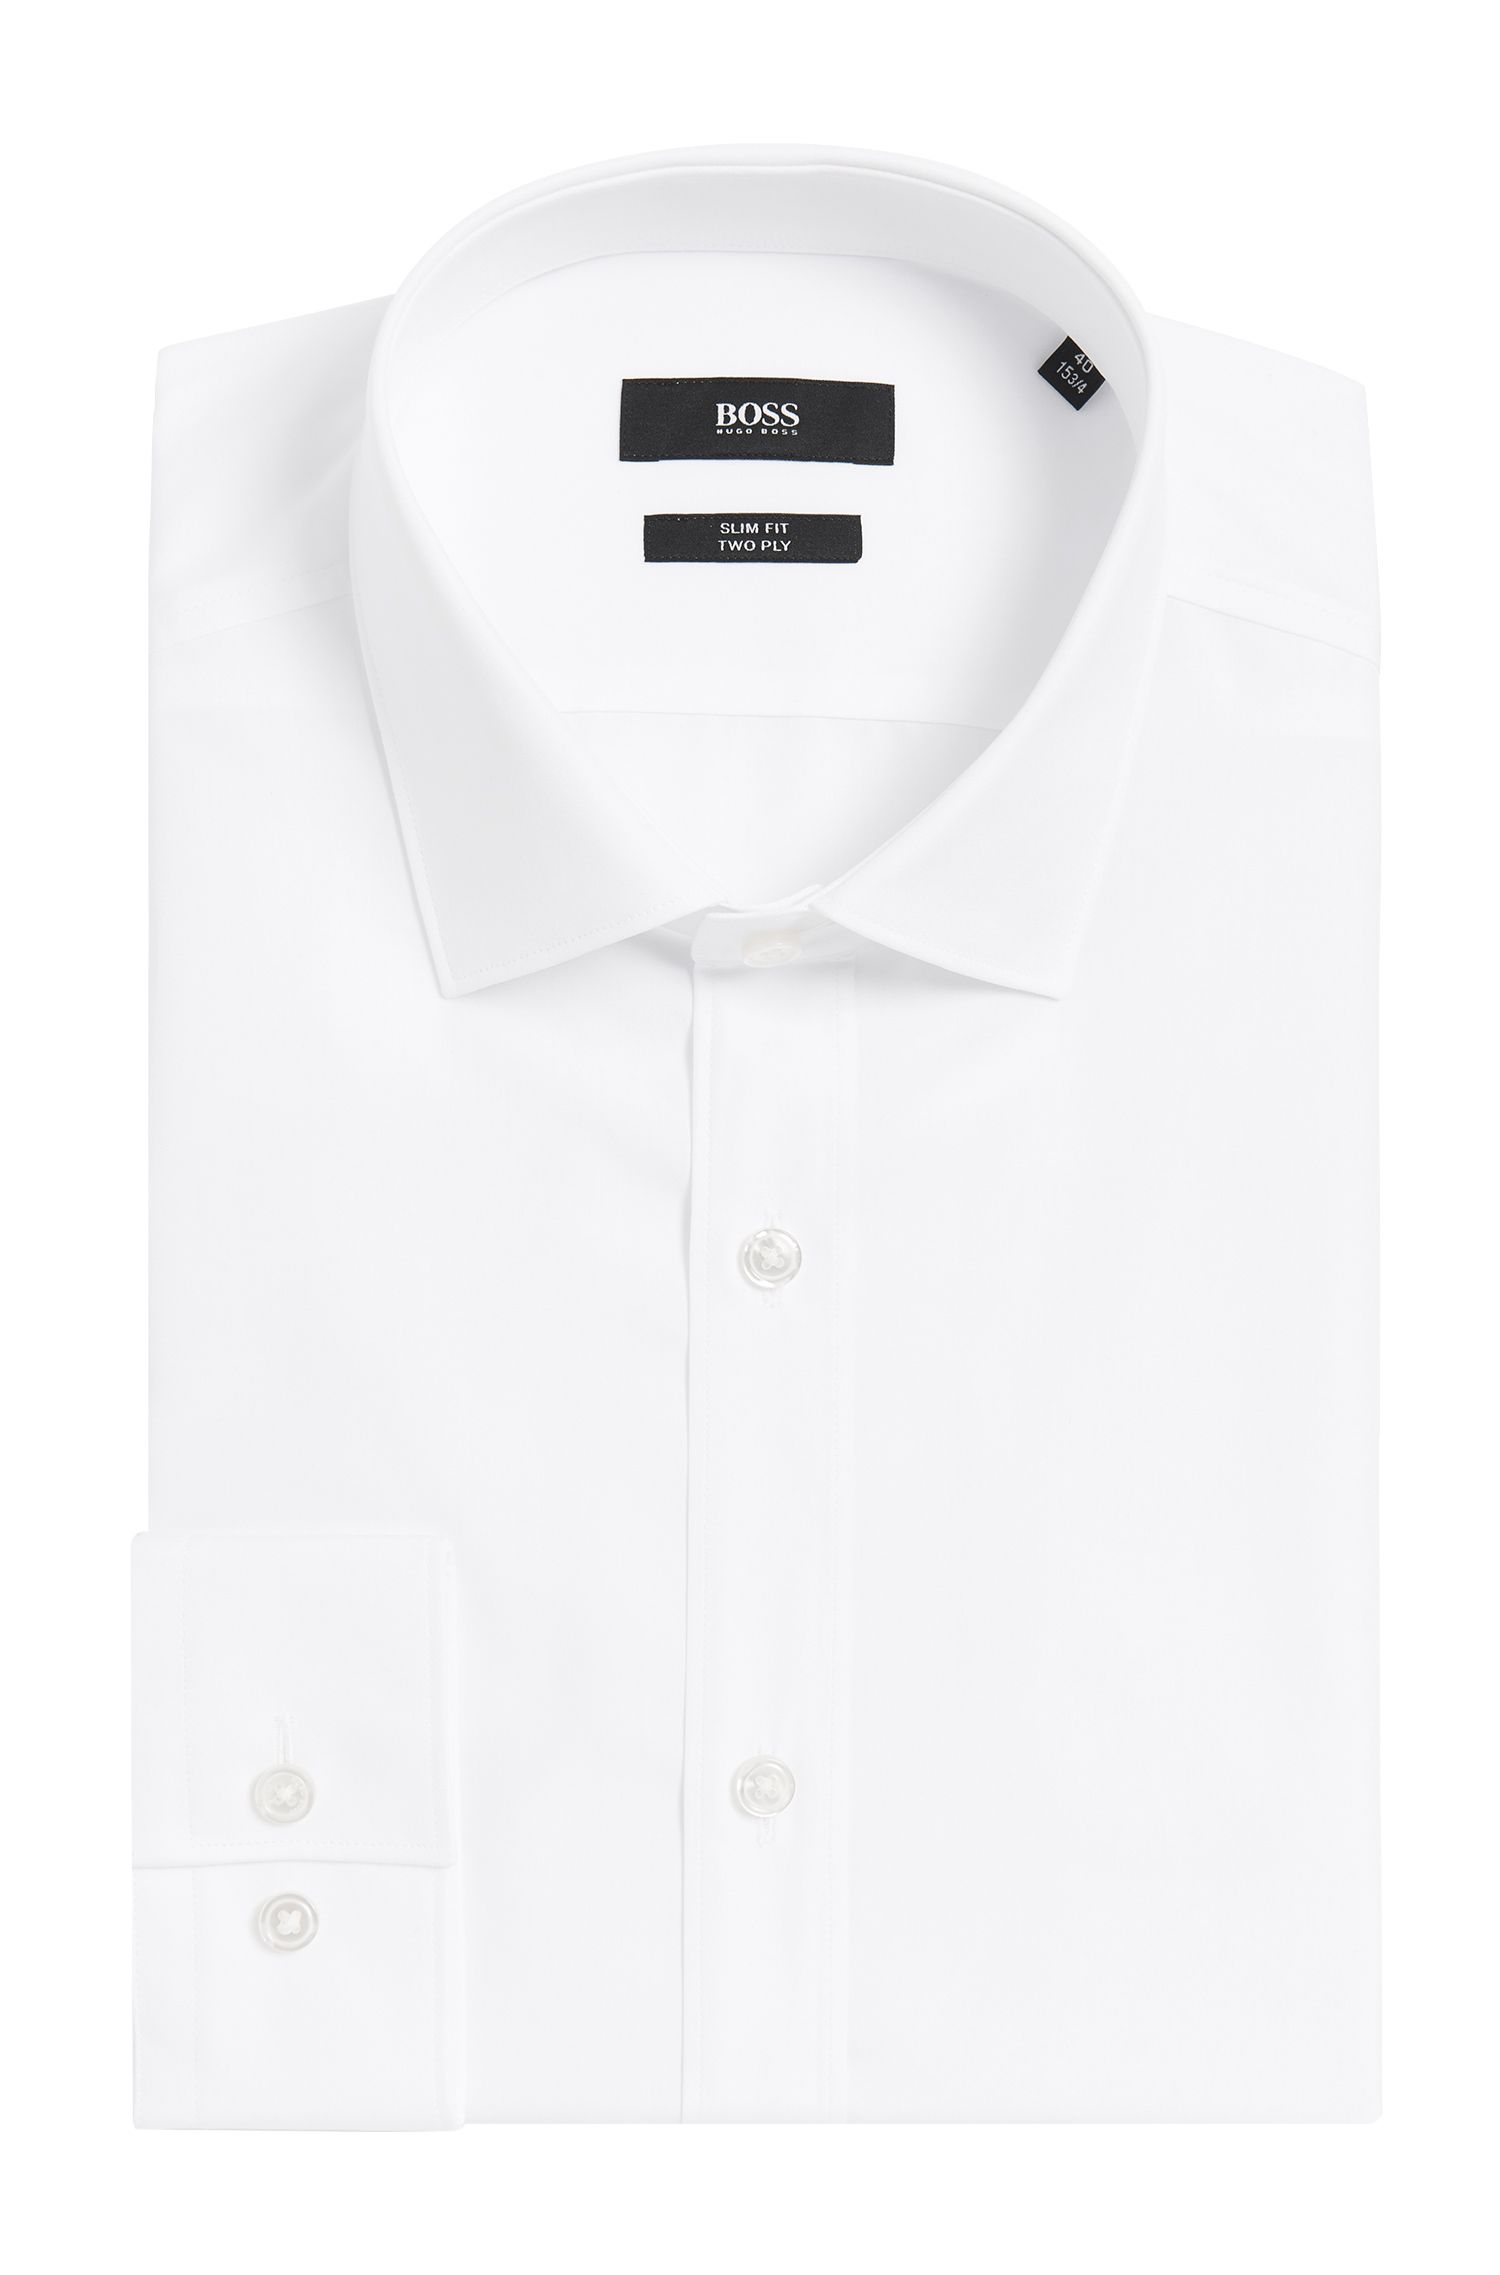 2-Ply Italian Cotton Dress Shirt, Slim Fit | Isaak